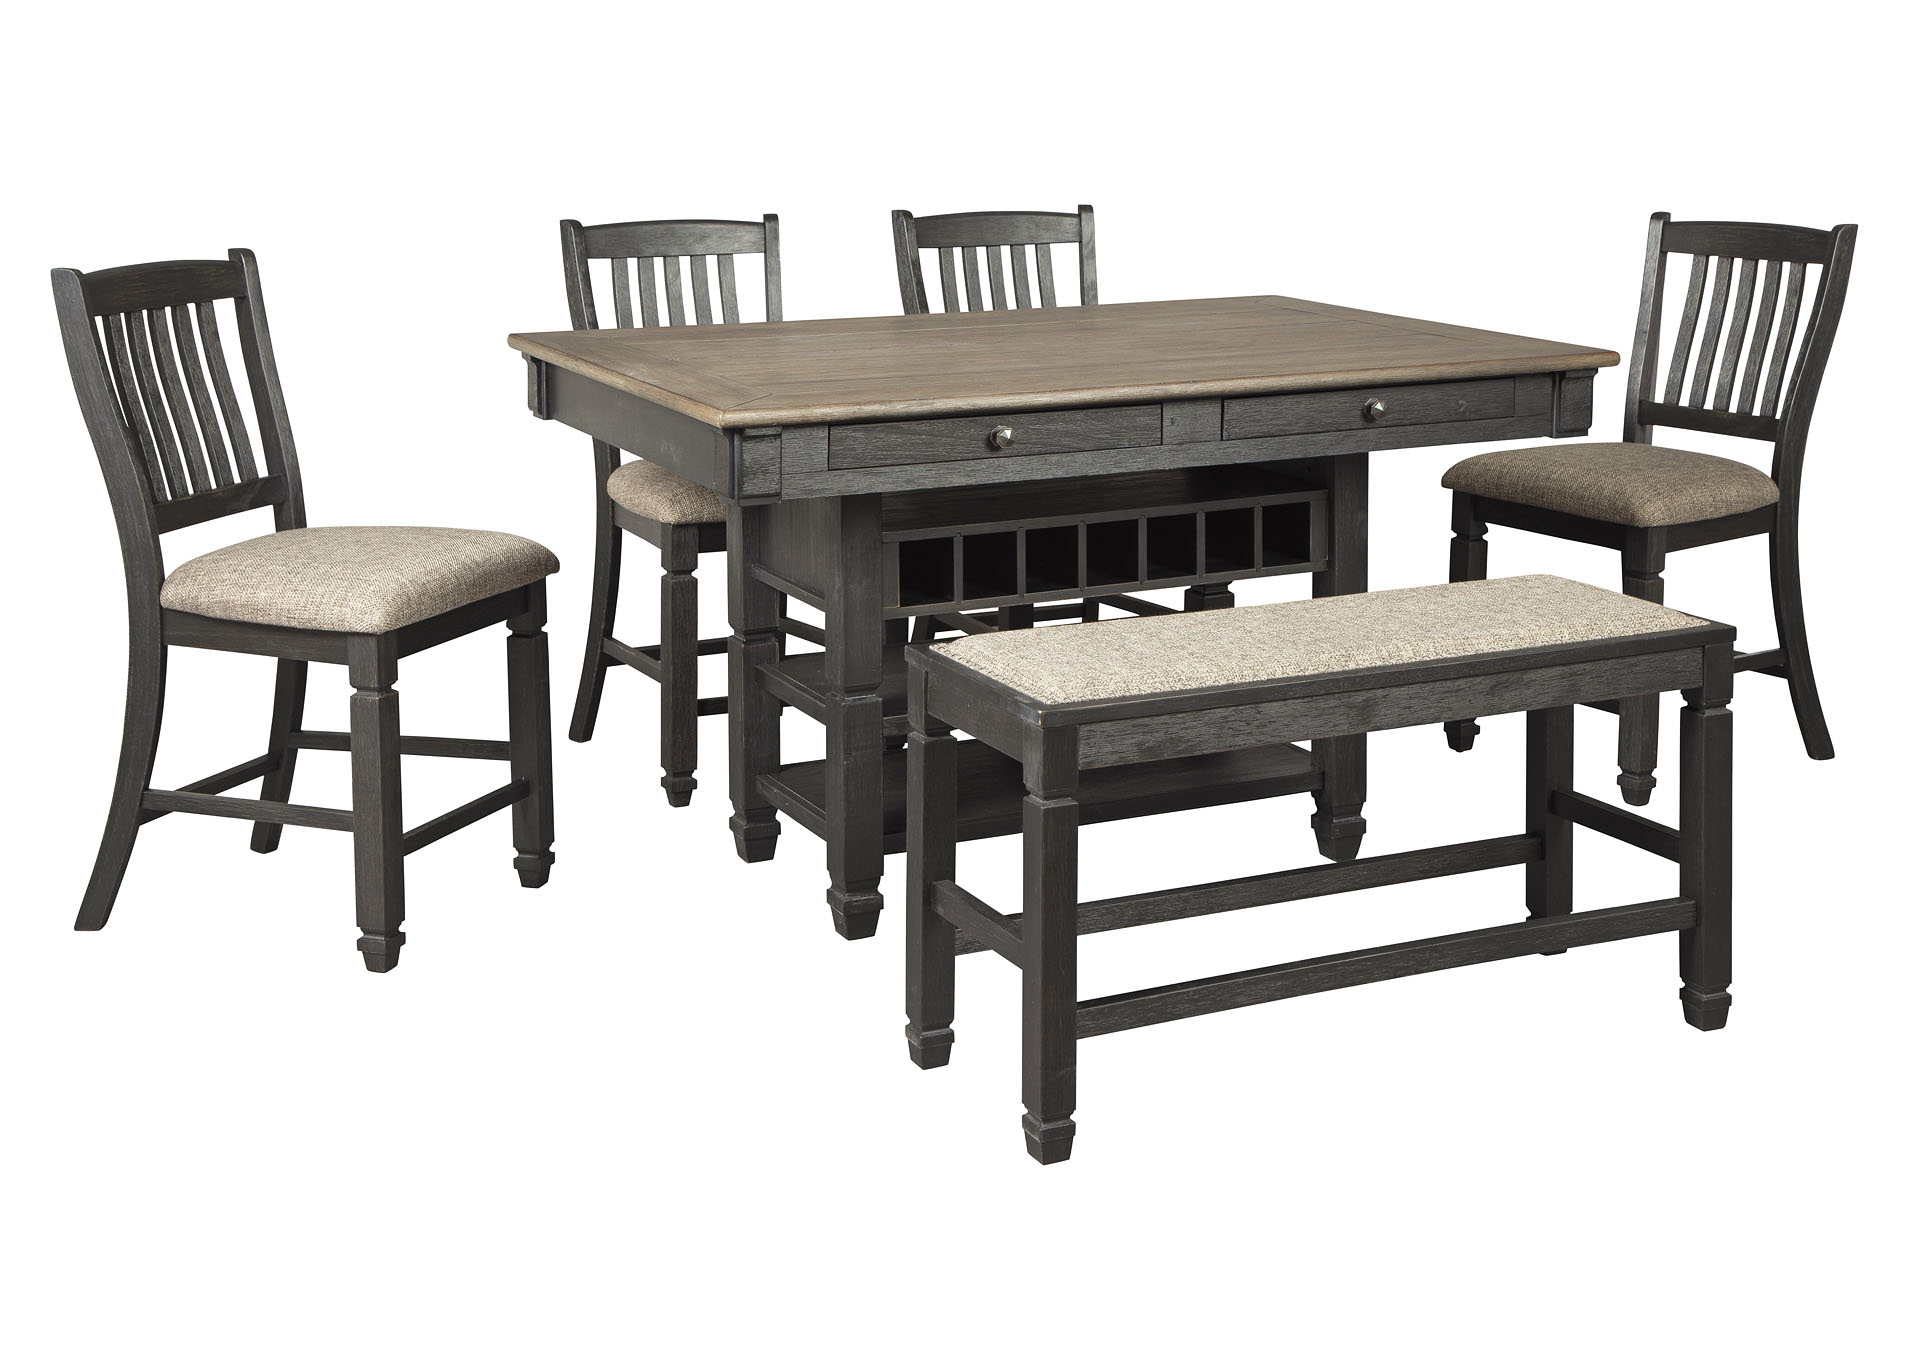 Tyler Creek Counter Height Dining Table w/4 Counter Stools and Bench